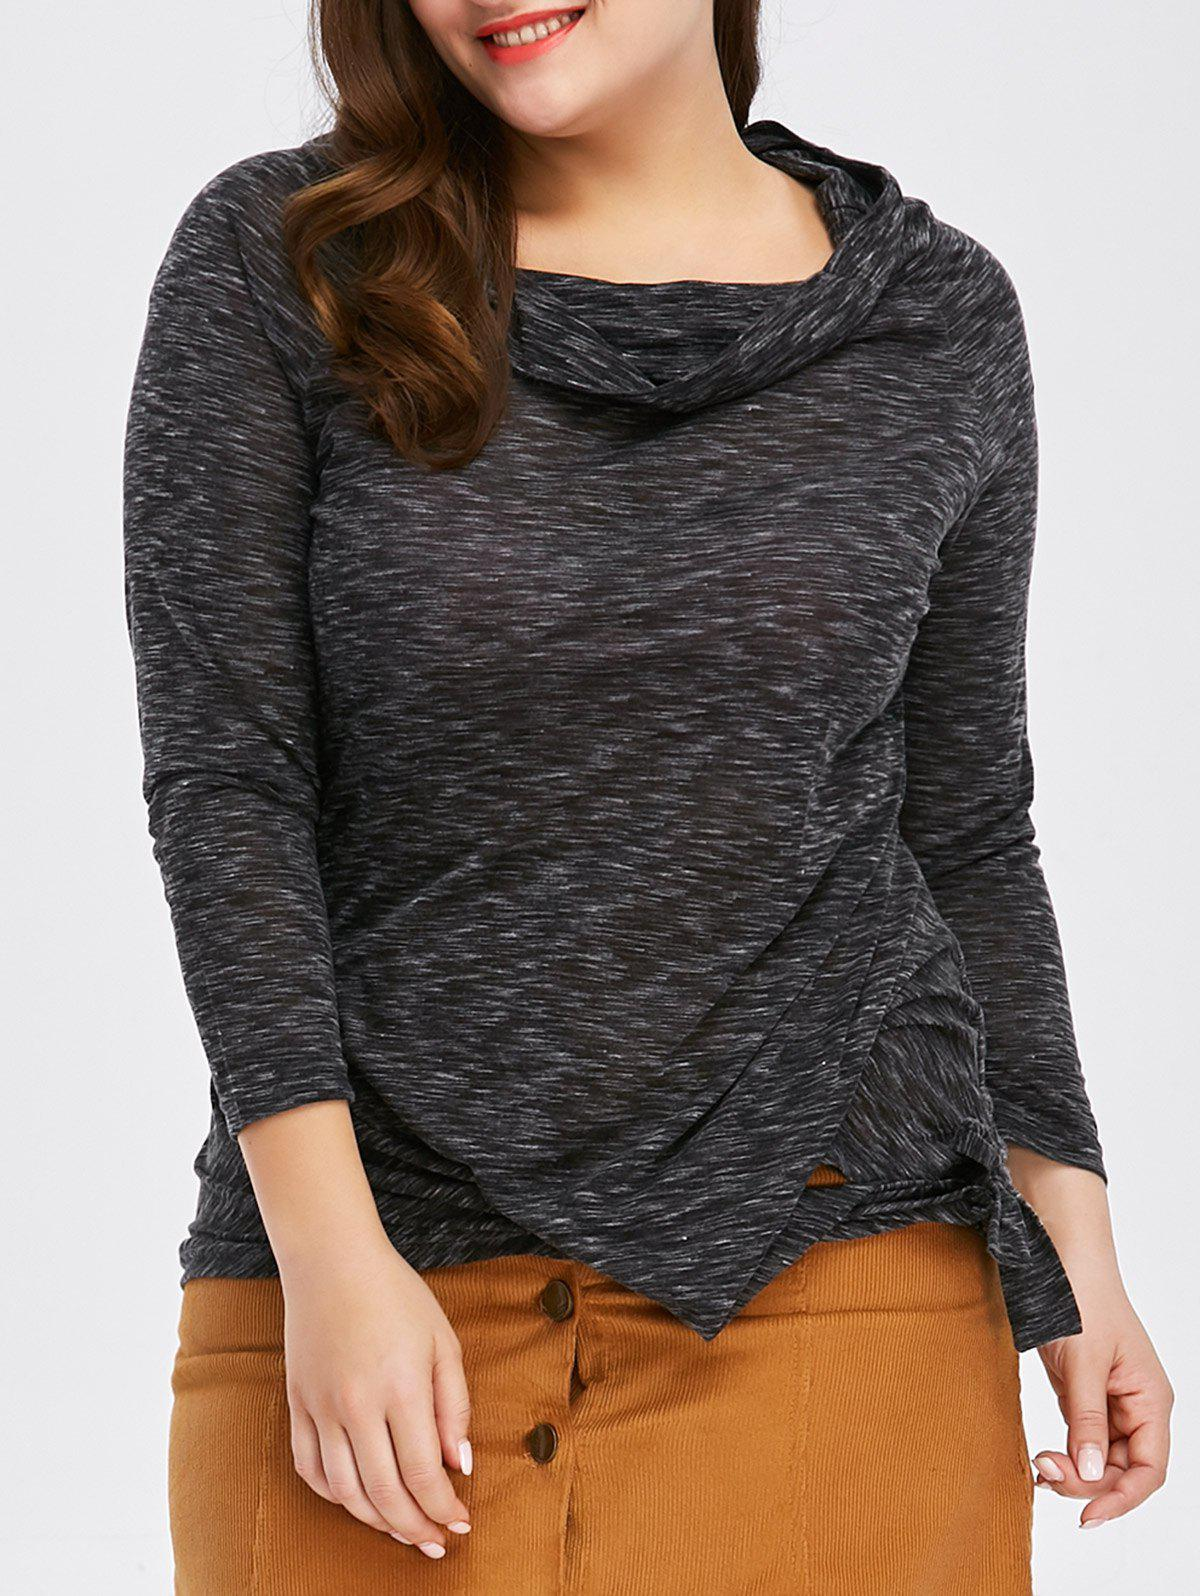 Online Fashionable Off-The-Shoulder Solid Color Plus Size 3/4 Sleeve T-Shirt For Women